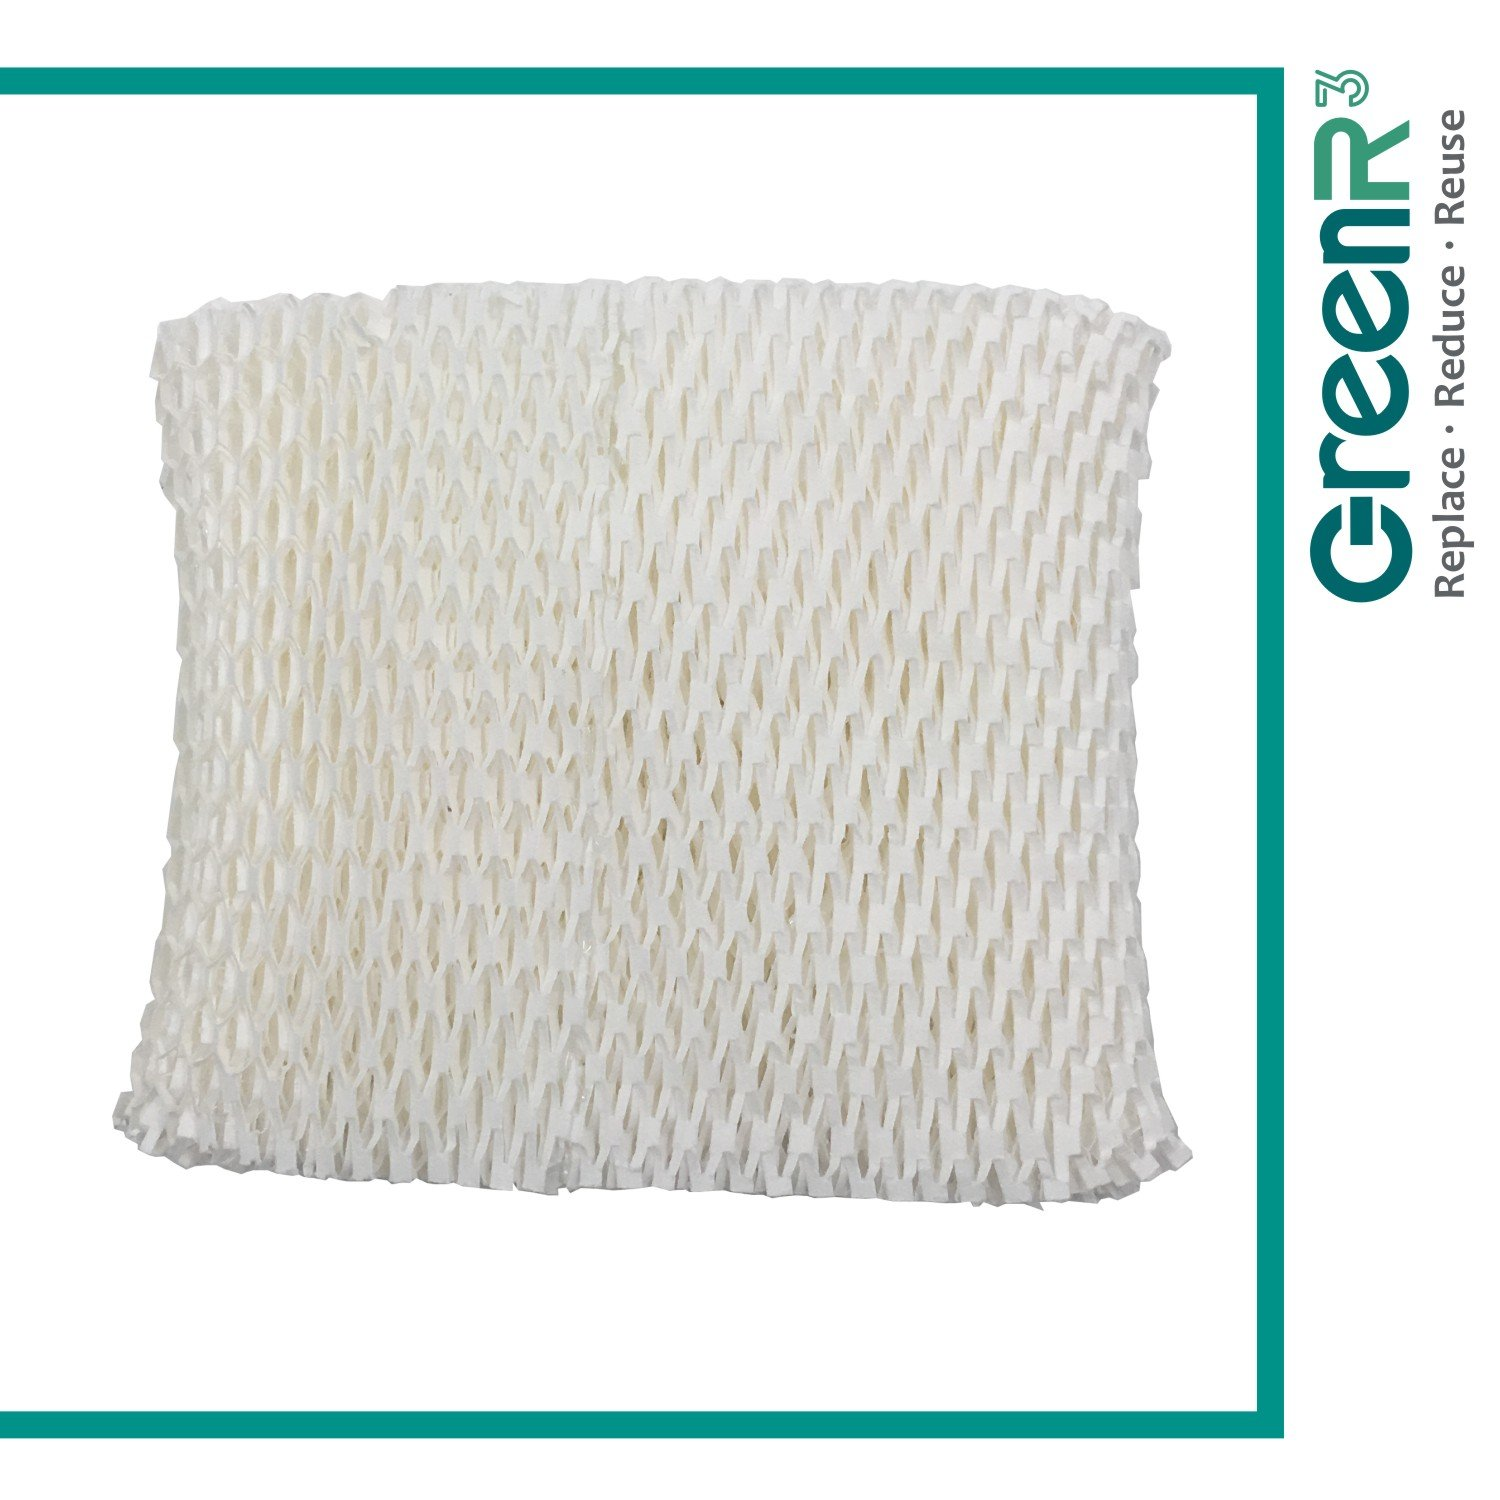 GreenR3 1-PACK Wick Filters Humidifiers For Honeywell HC-888 fits HCM890 HCM890C HCM890-20 HCM-890 HCM-890-C HCM-890-20 Duracraft DCM200 HCM890 DH888 DH890 DH890C AC-888 Best Air D88 and more Compatible